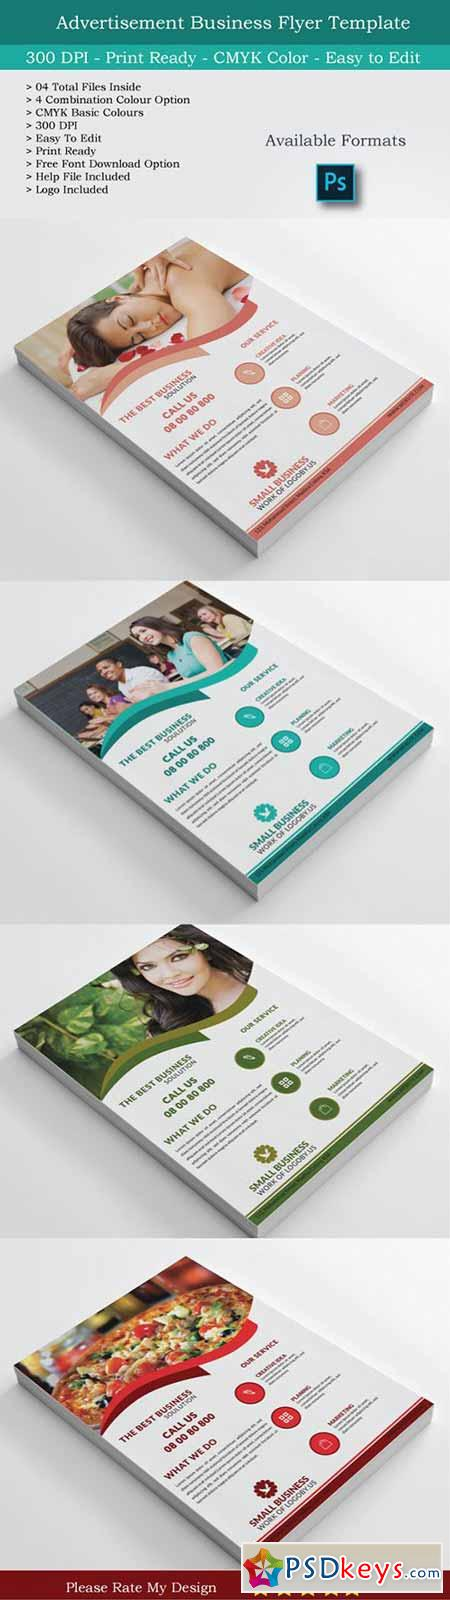 small business flyers